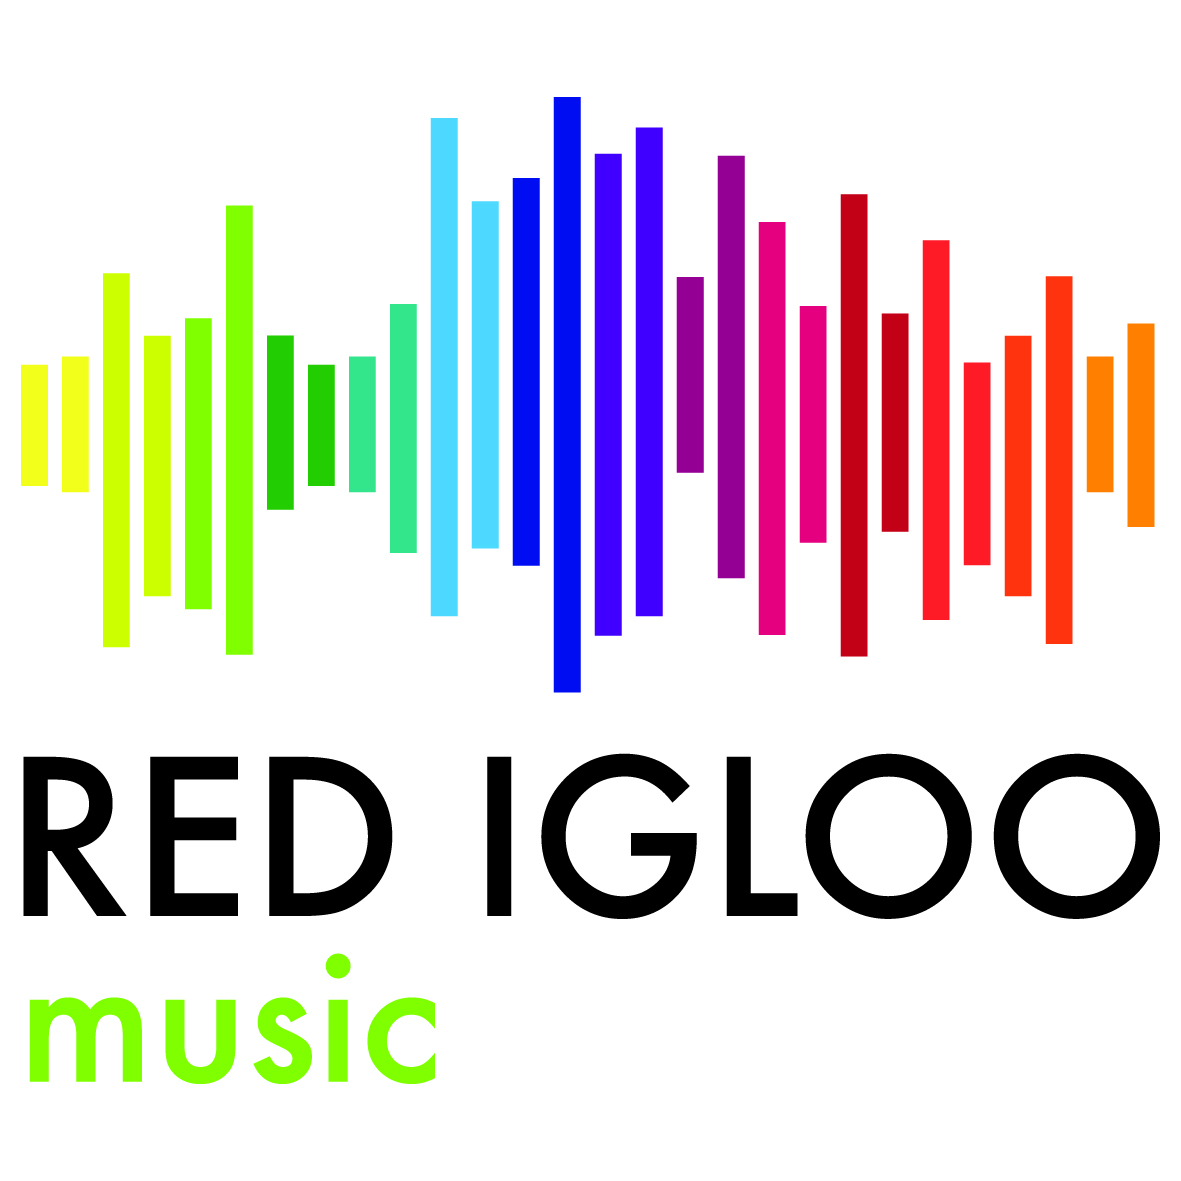 Red Igloo logo lrg.jpg